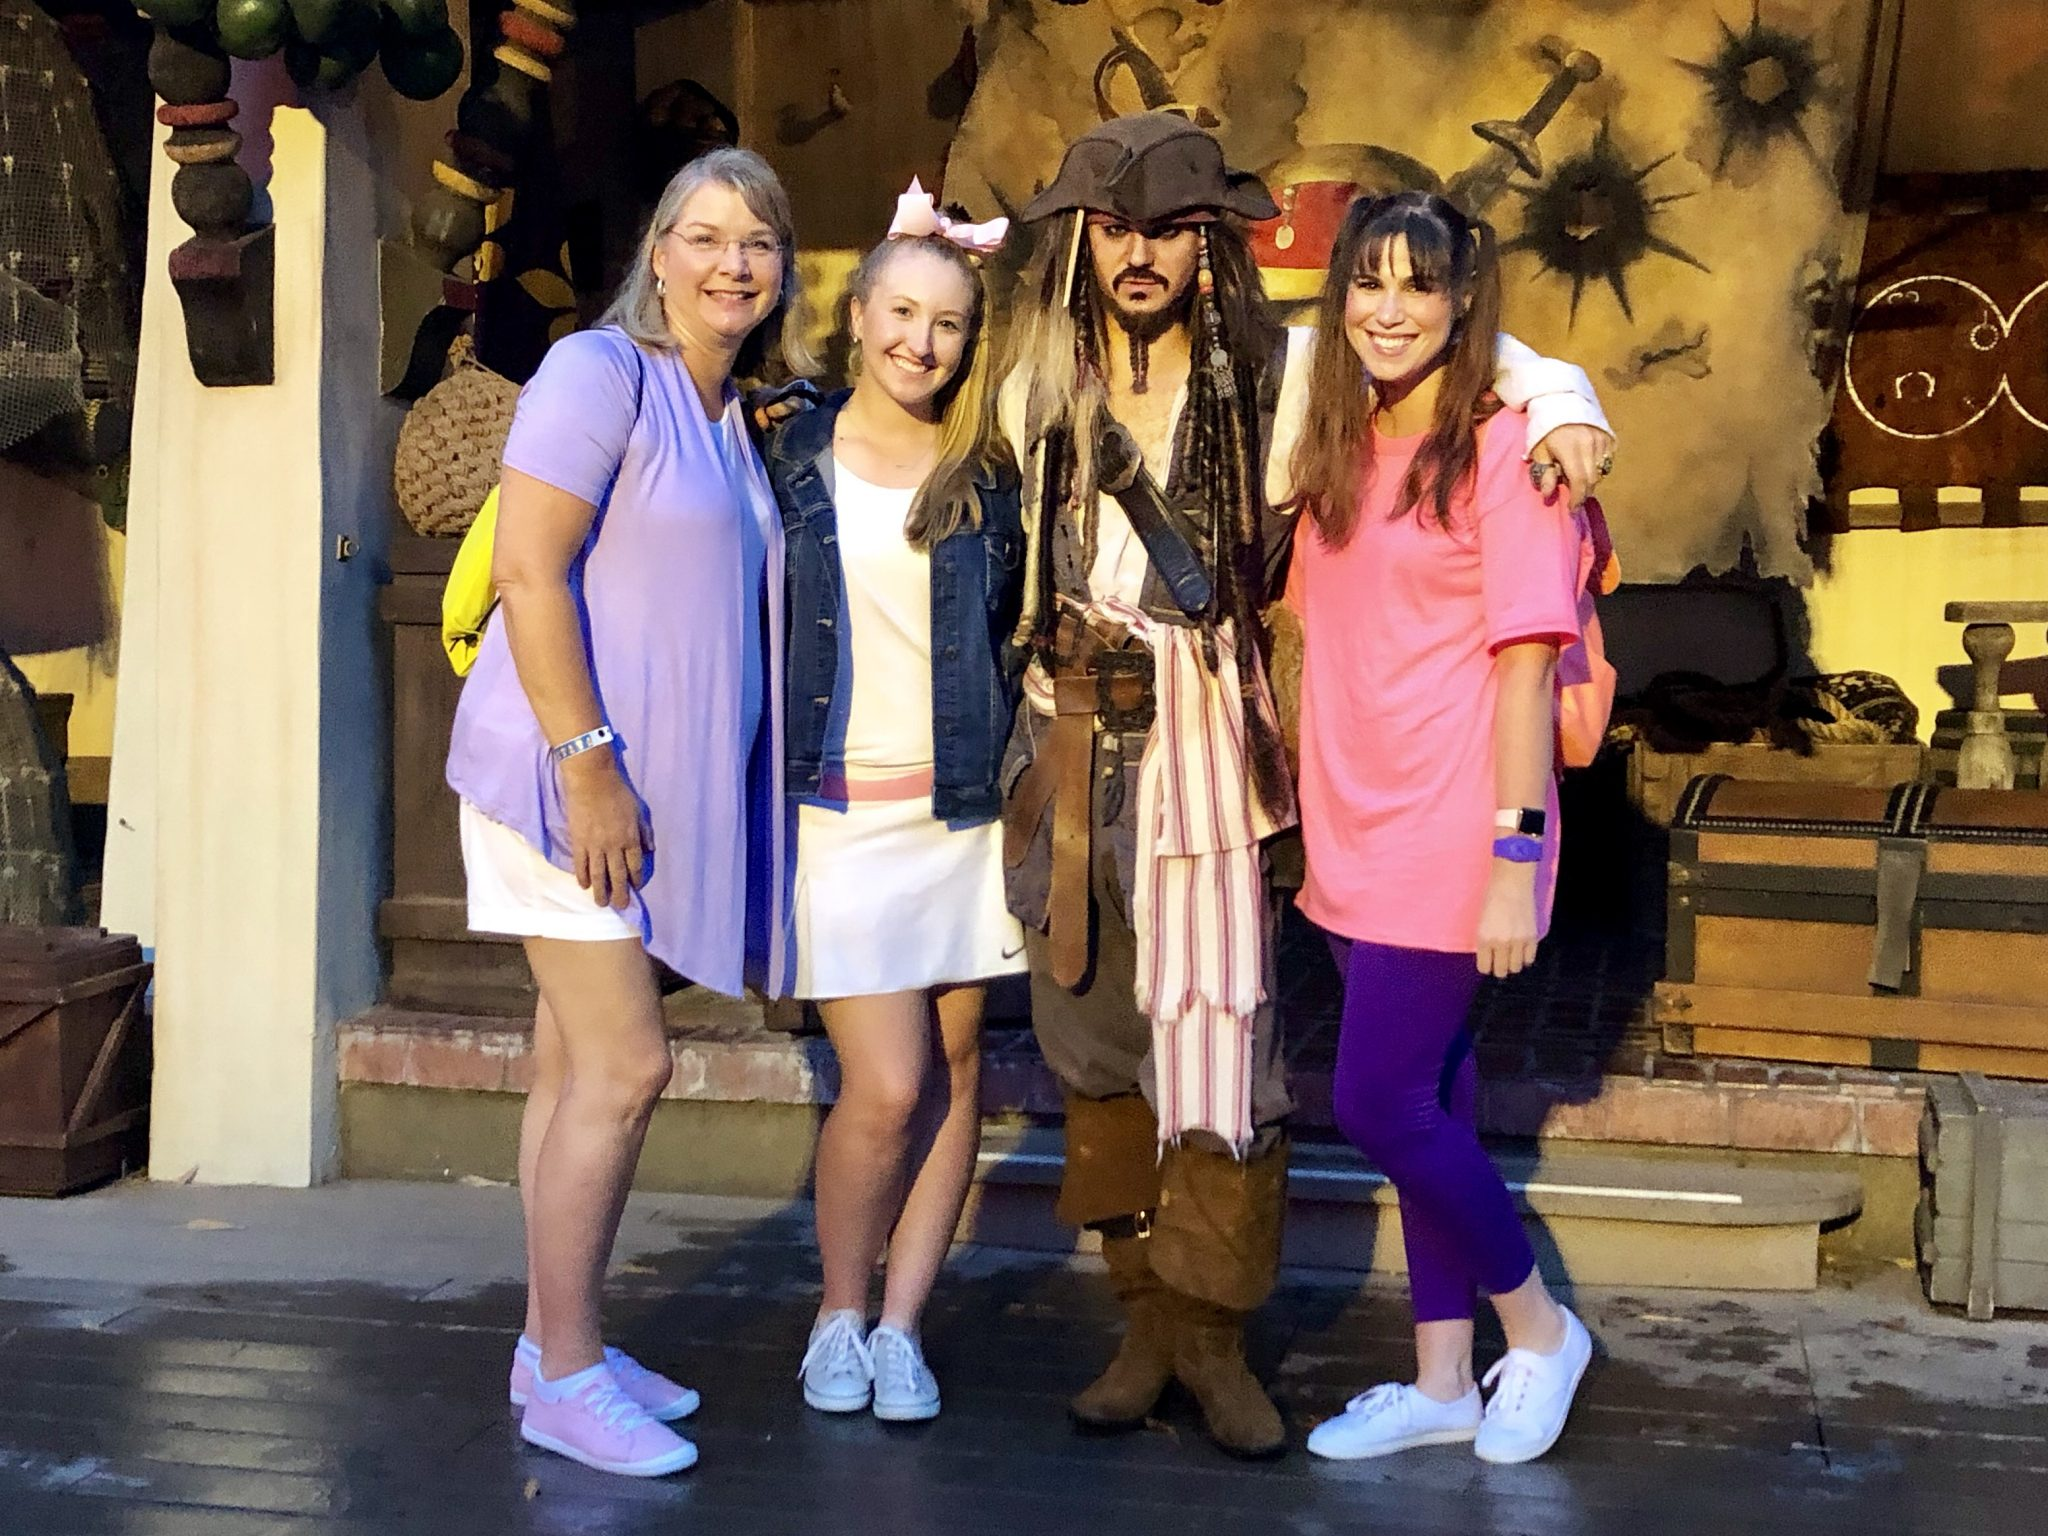 Captain Jack Sparrow | Mickeys Not So Scary: Disneys Spookiest Party | www.herlifeinruins.com